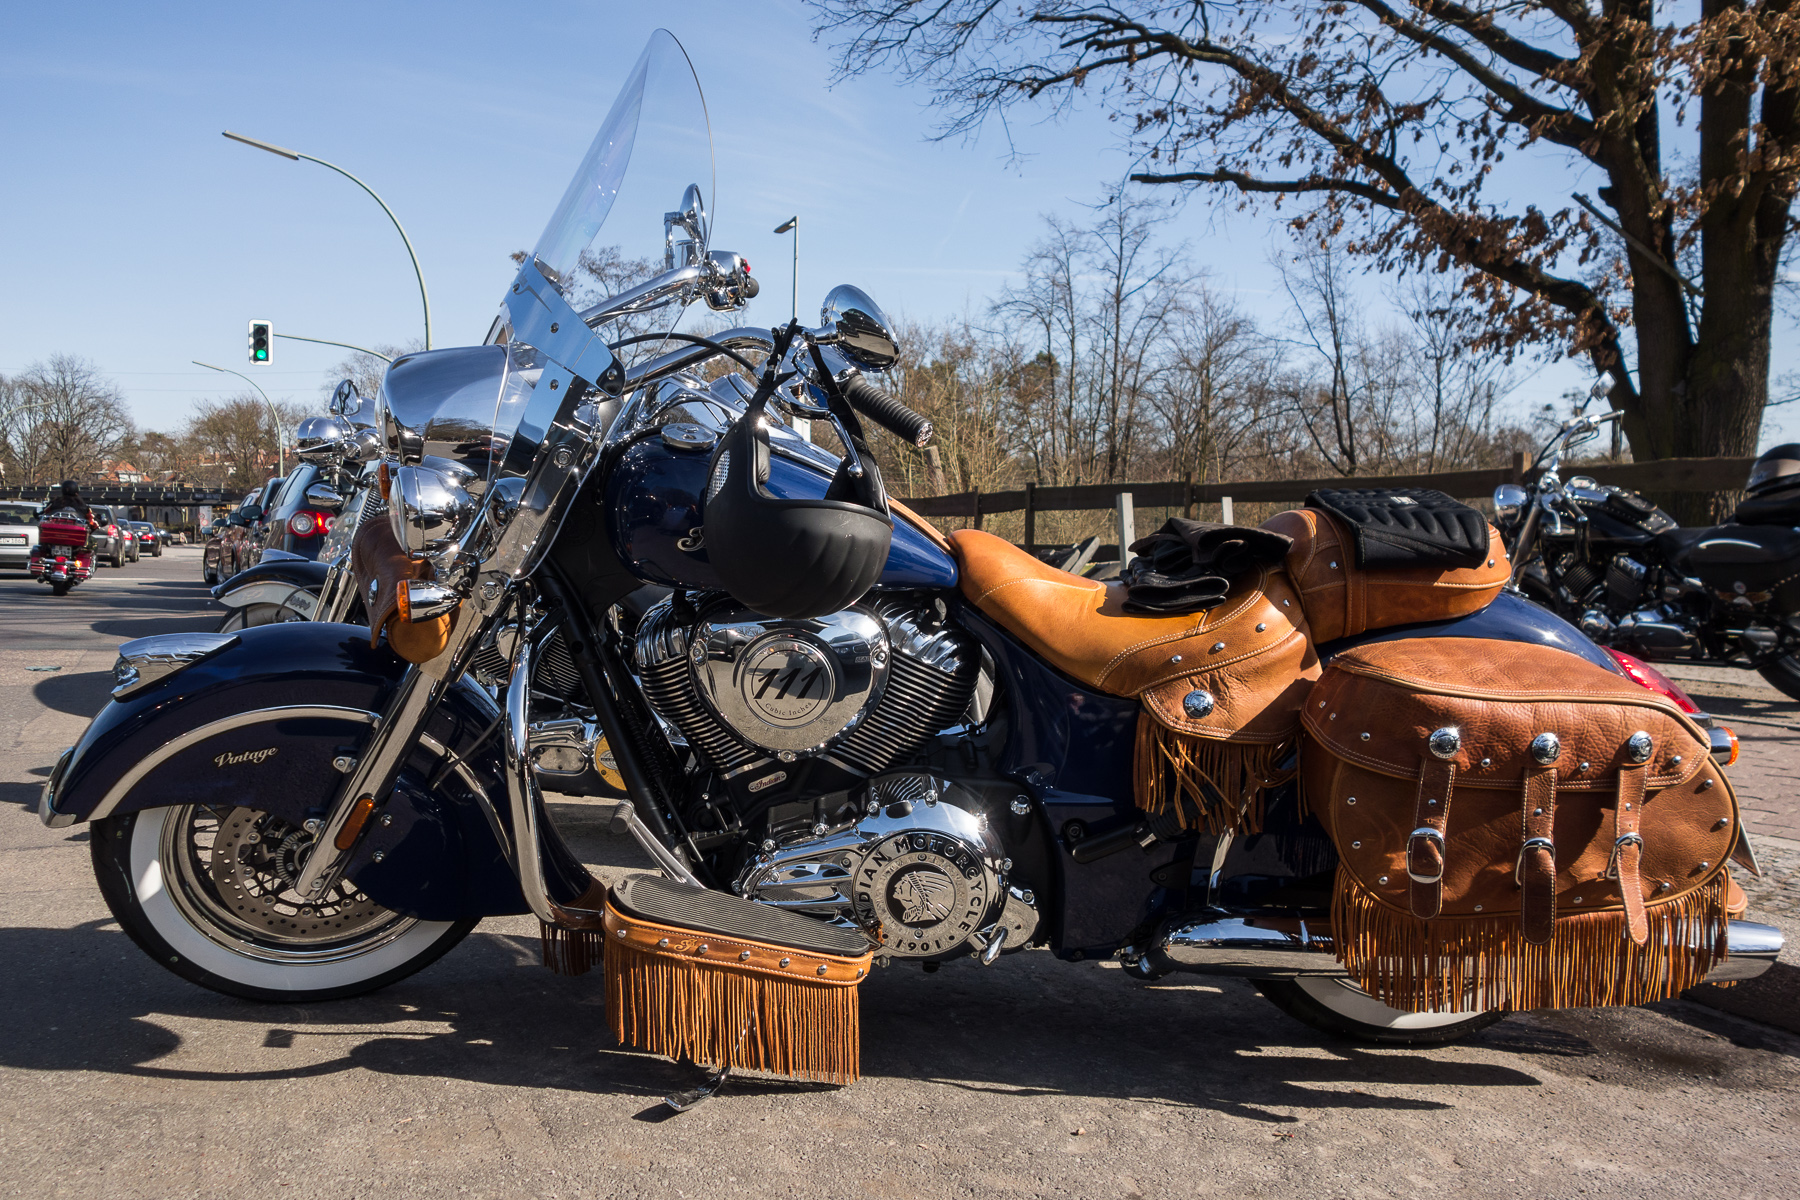 Indian Chief Standard 2010 images #99485